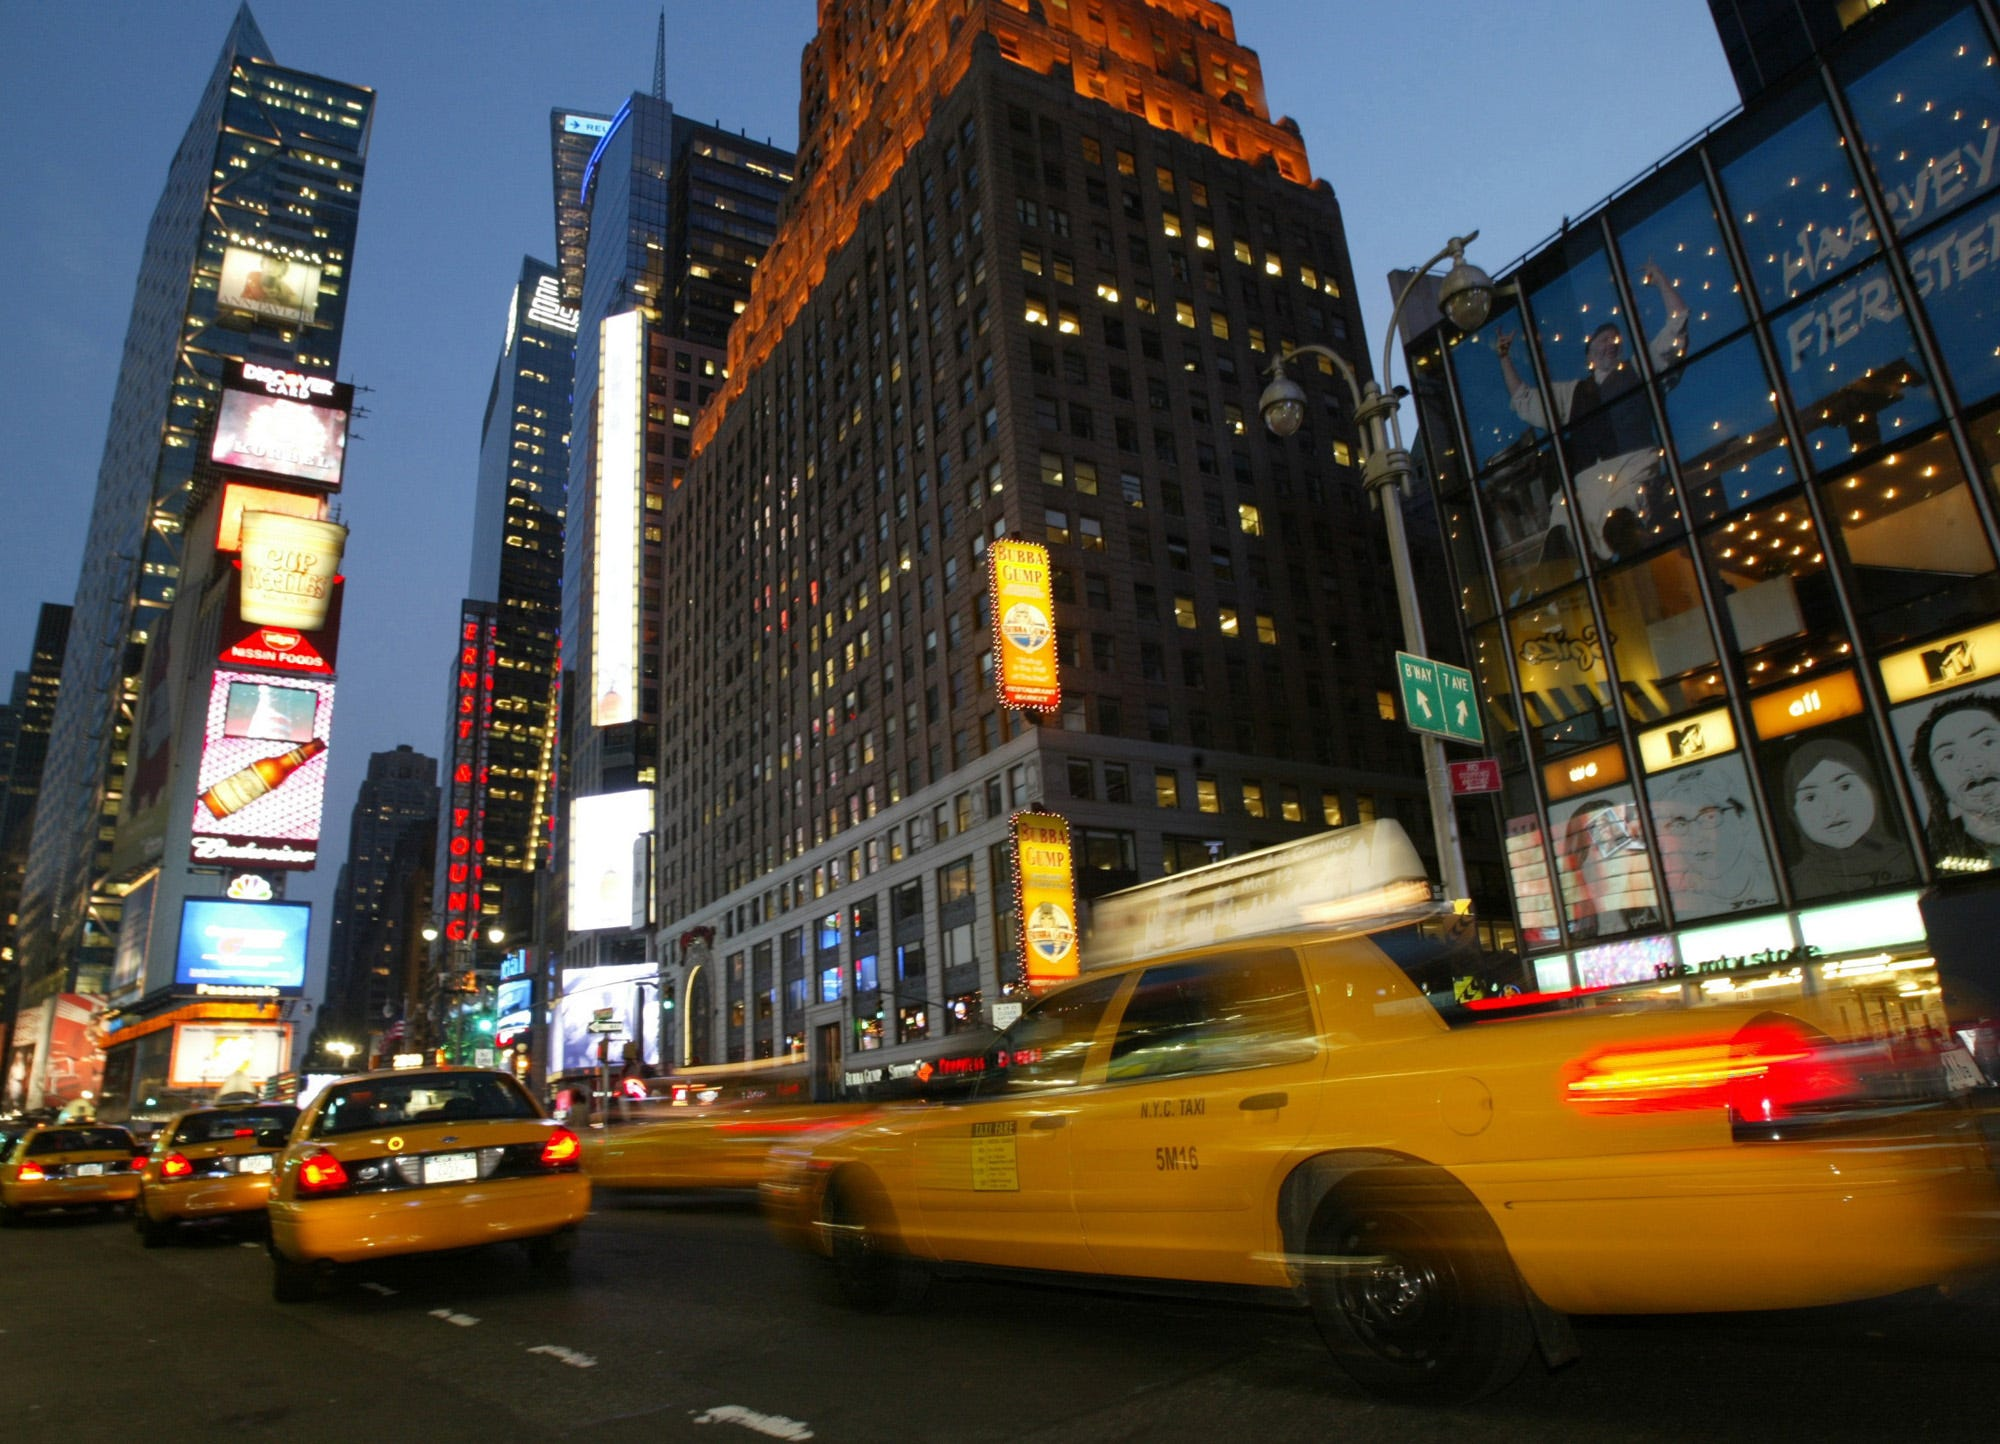 Reports: Man arrested for alleged plot to set off explosive devices in Times Square